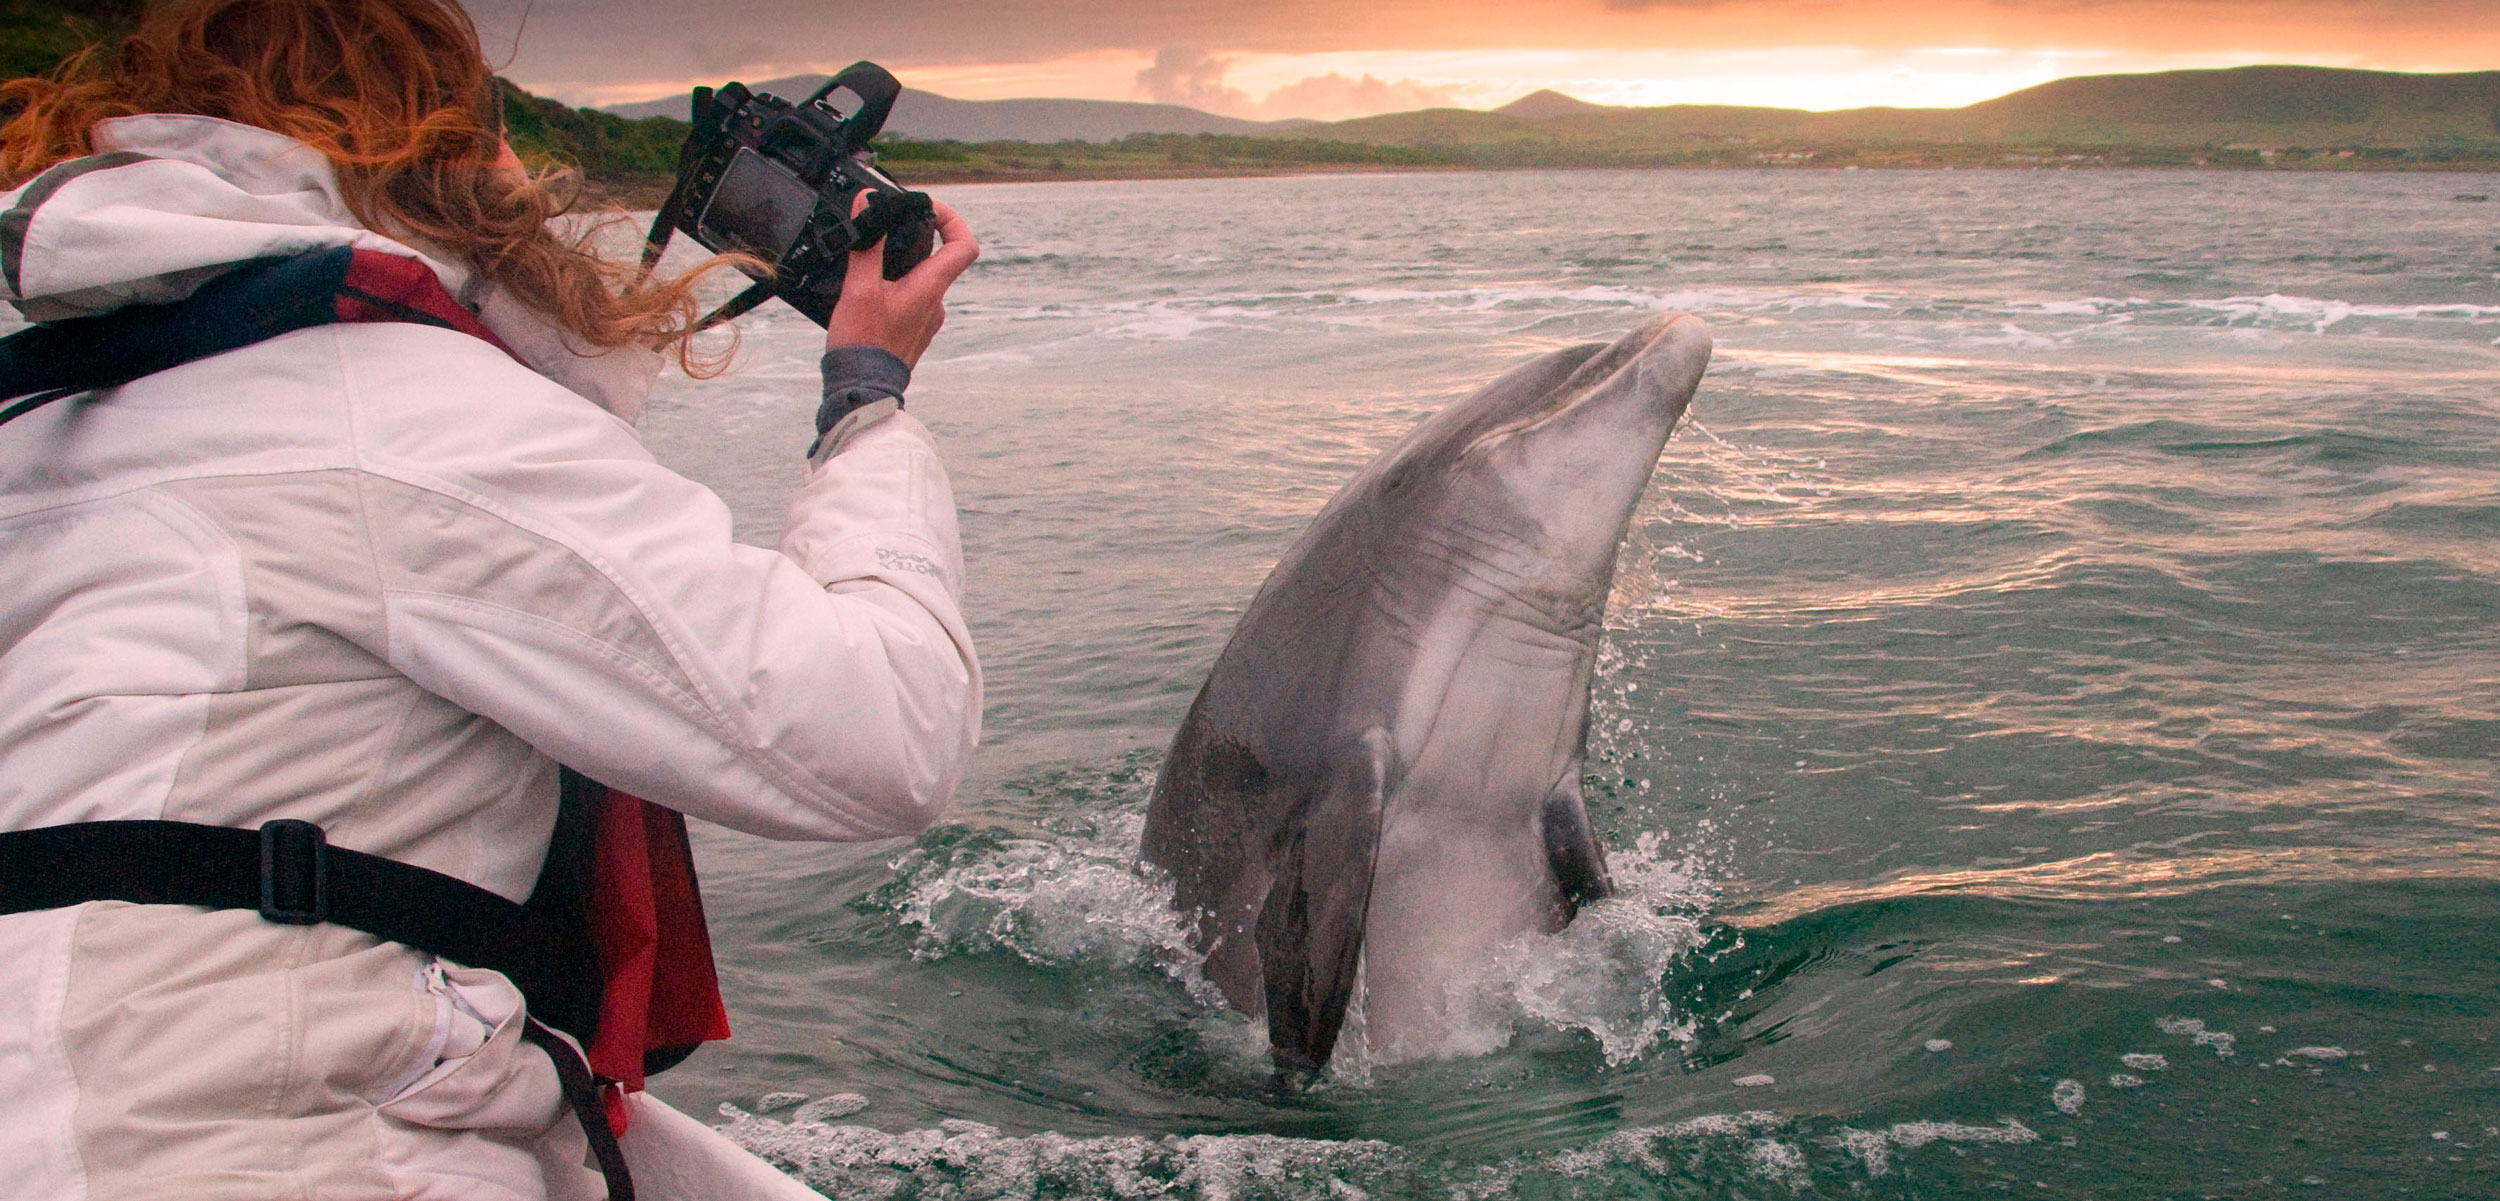 woman photographs Fungie the Dolphin in Dingle, Ireland